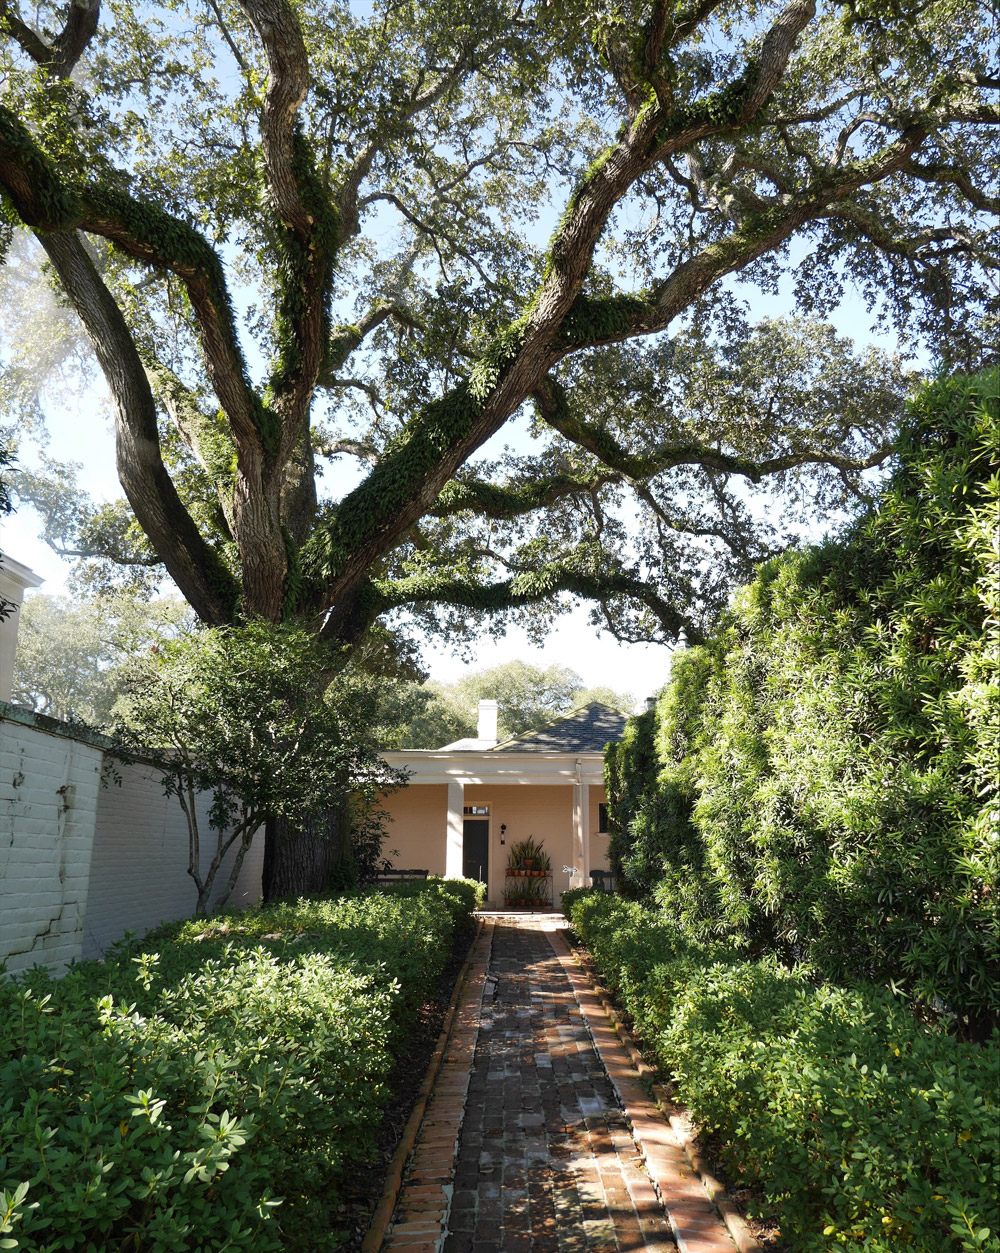 Longue Vue House and Gardens, New Orleans